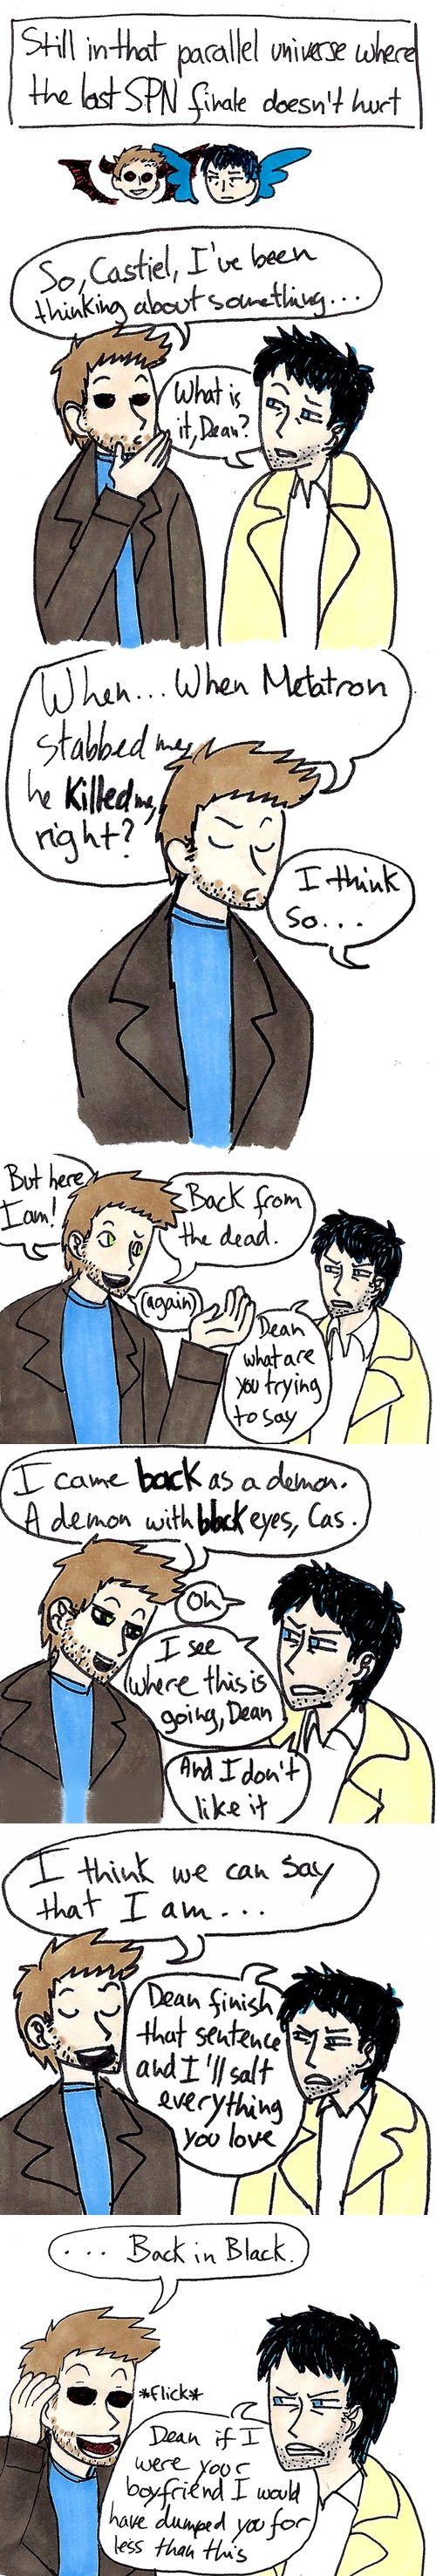 The parallel universe world were the spn finale doesn't hurt